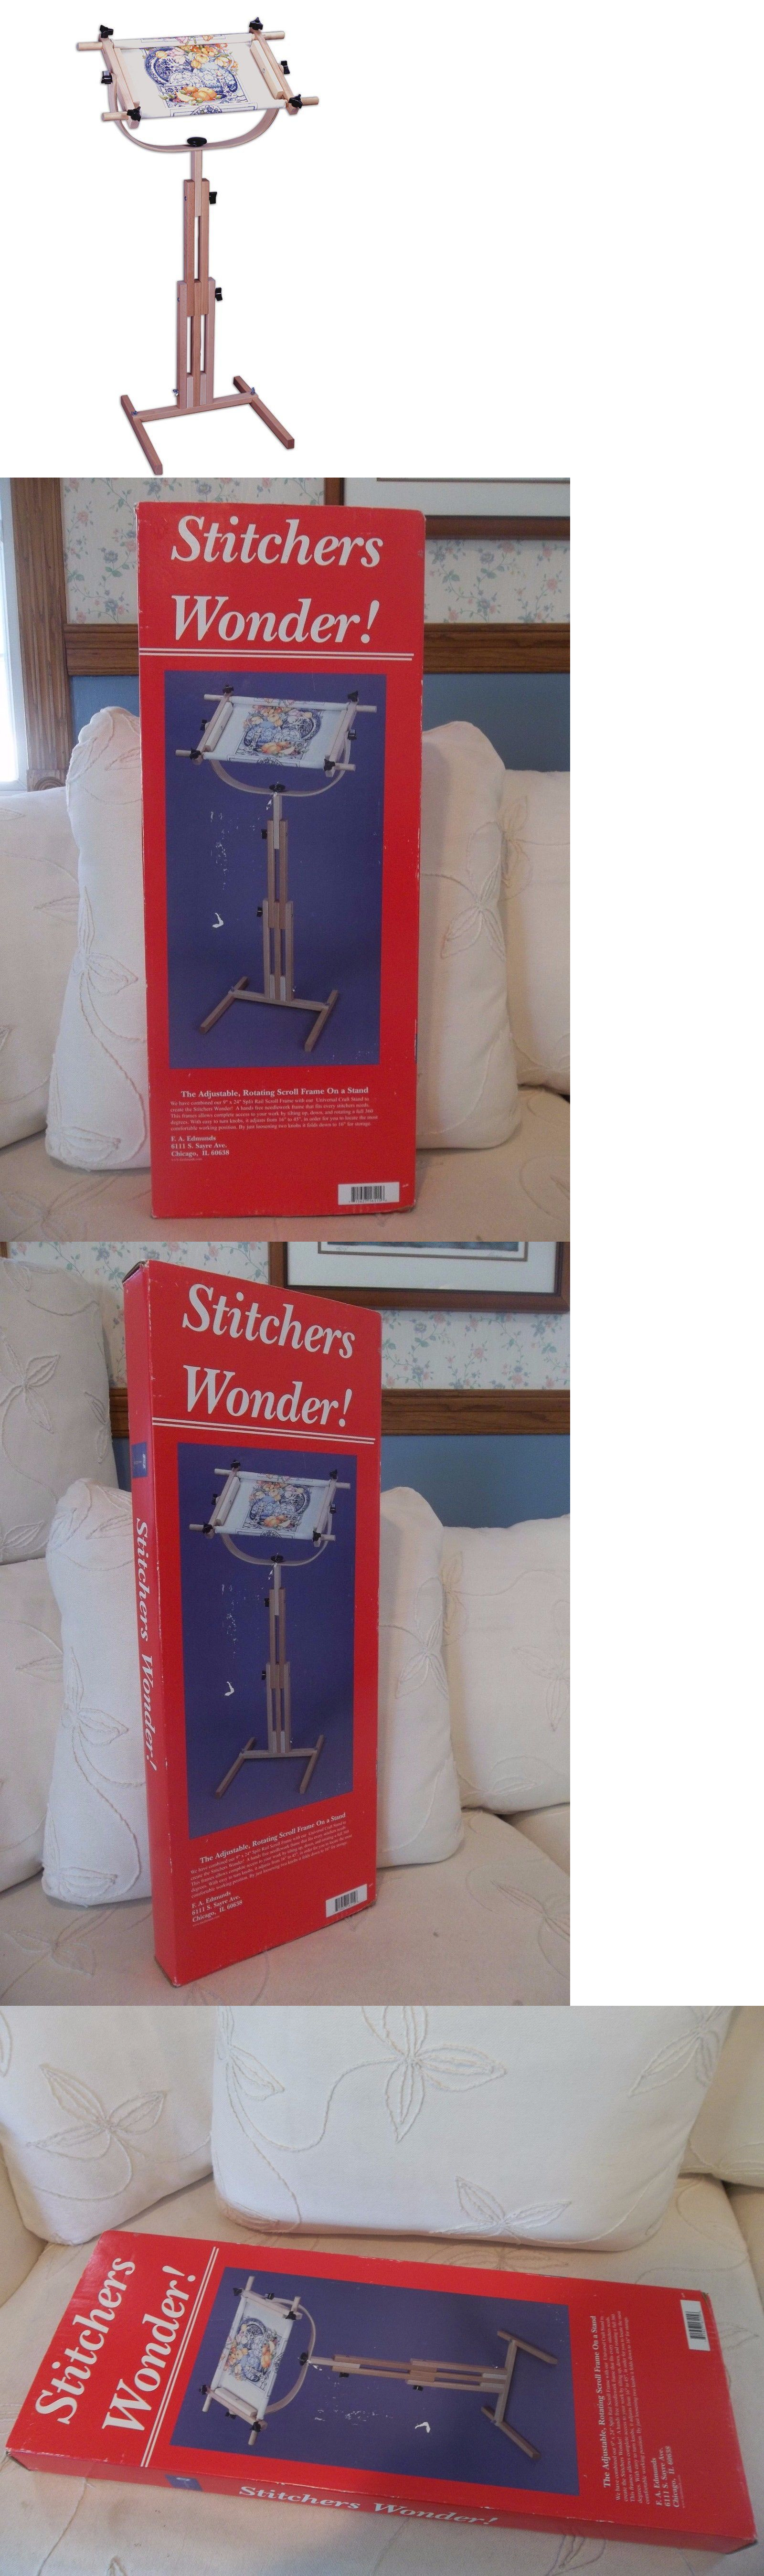 Hand Embroidery Hoops and Frames 160721: Fa Edmunds Stitchers Wonder ...